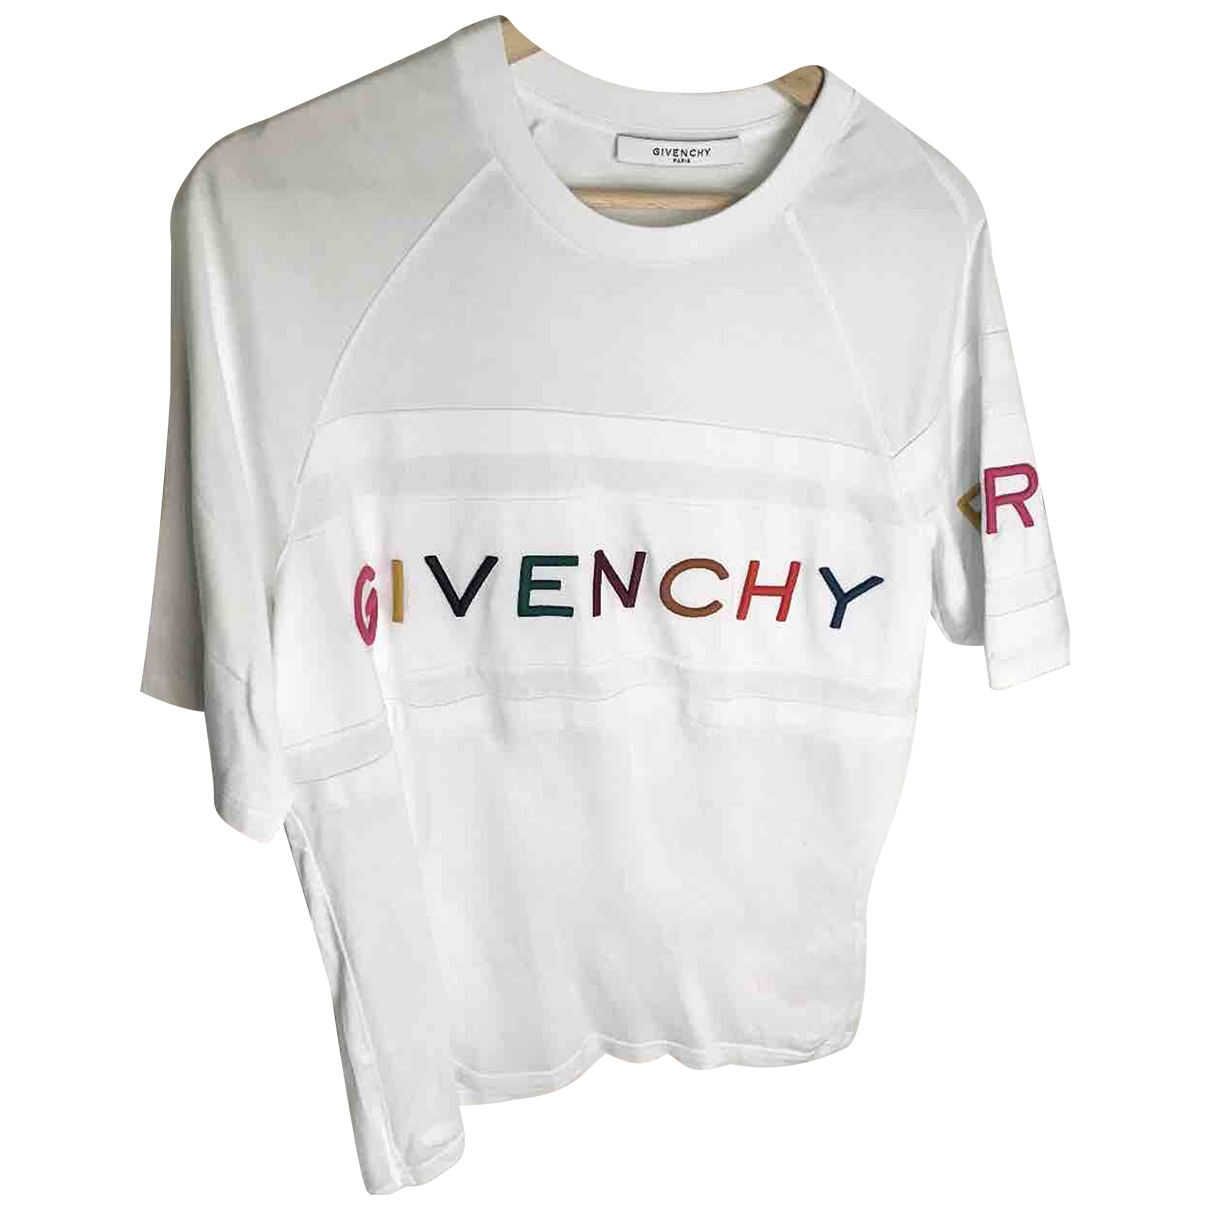 Givenchy \N White Cotton T-shirts for Men XS International